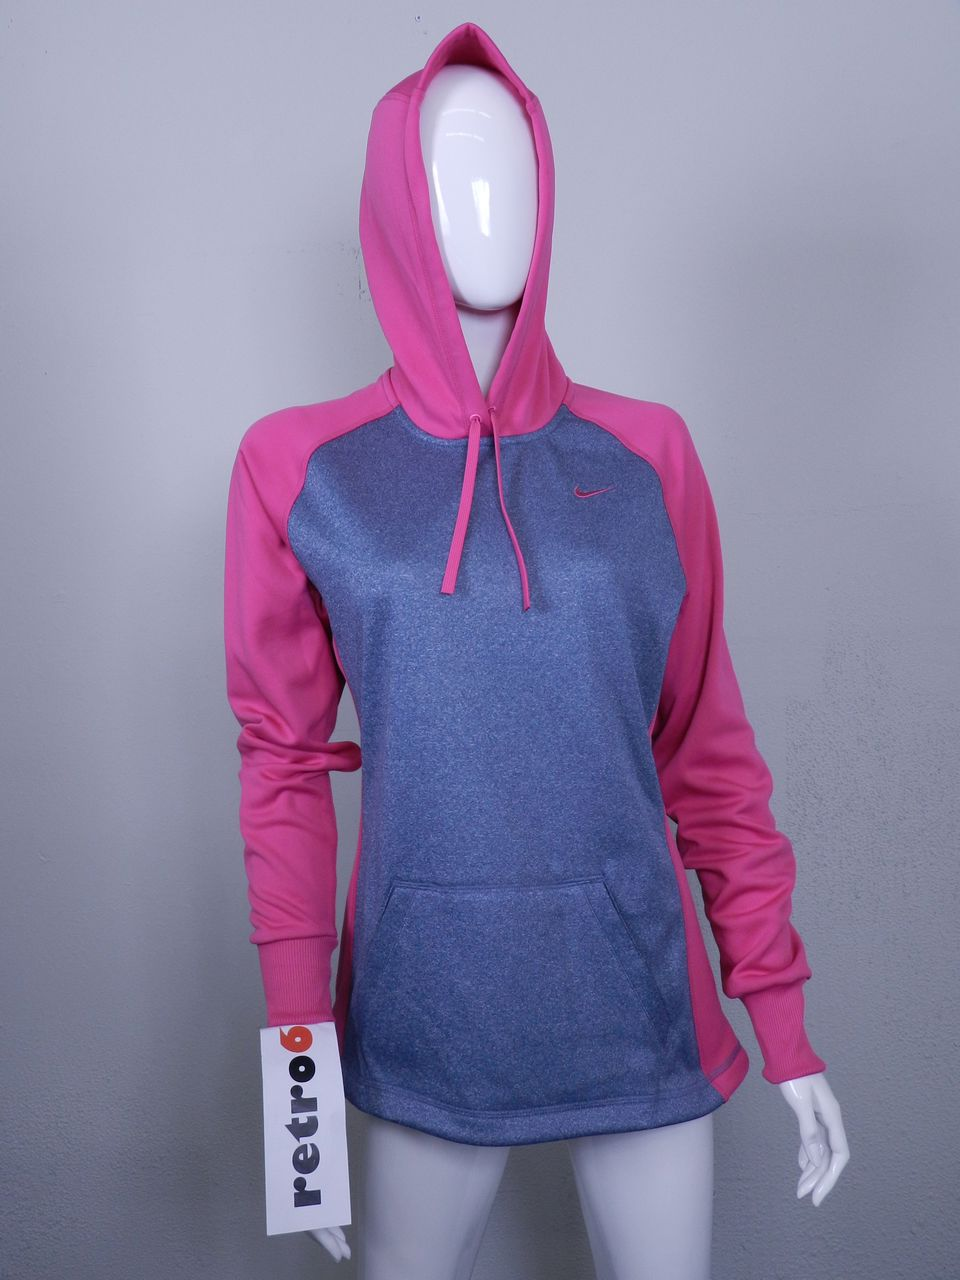 nike scoop therma fit hoodie new womens pink hoody pullover 424162 497 ebay. Black Bedroom Furniture Sets. Home Design Ideas